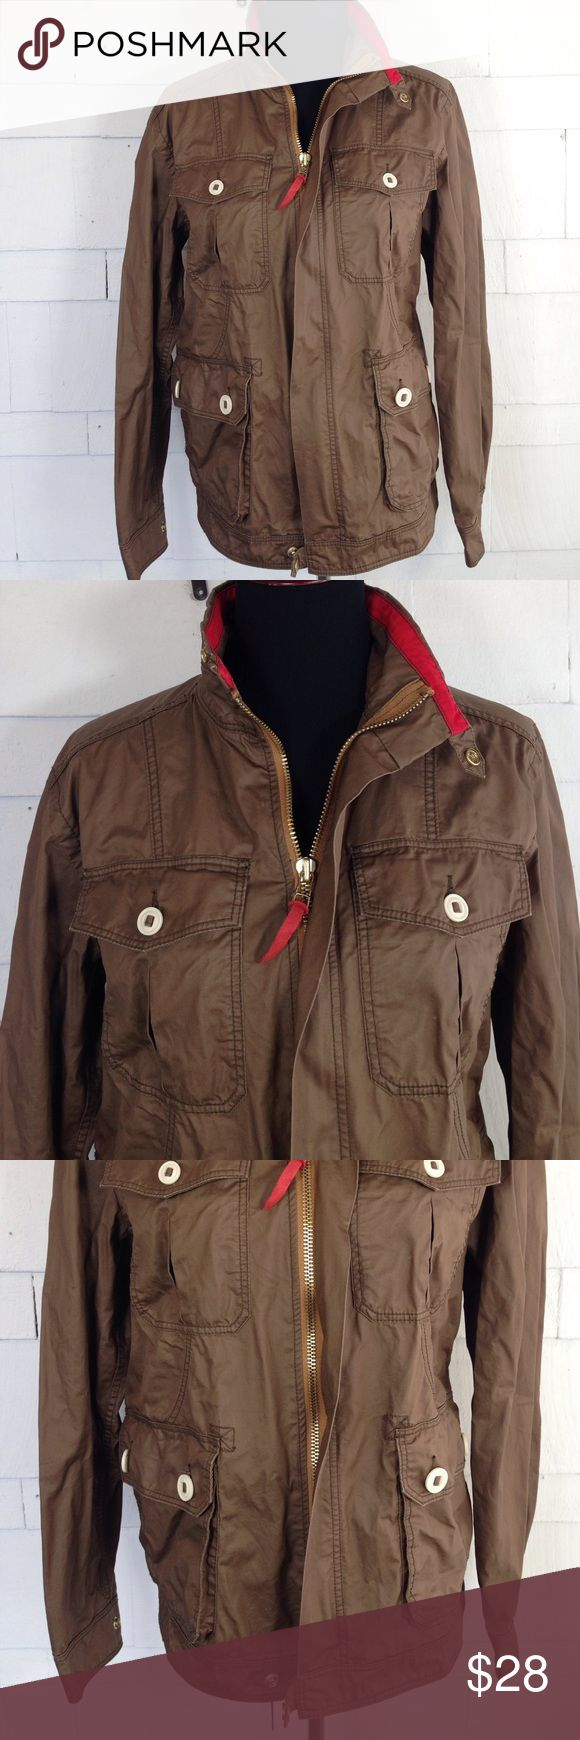 CPO PROVISIONS women's jacket. Small Cute waxed J.Crew style jacket. Perfect for fall. Good condition except tiny cut on back right shoulder which is the size of a centimeter. From urban outfitters Urban Outfitters Jackets & Coats